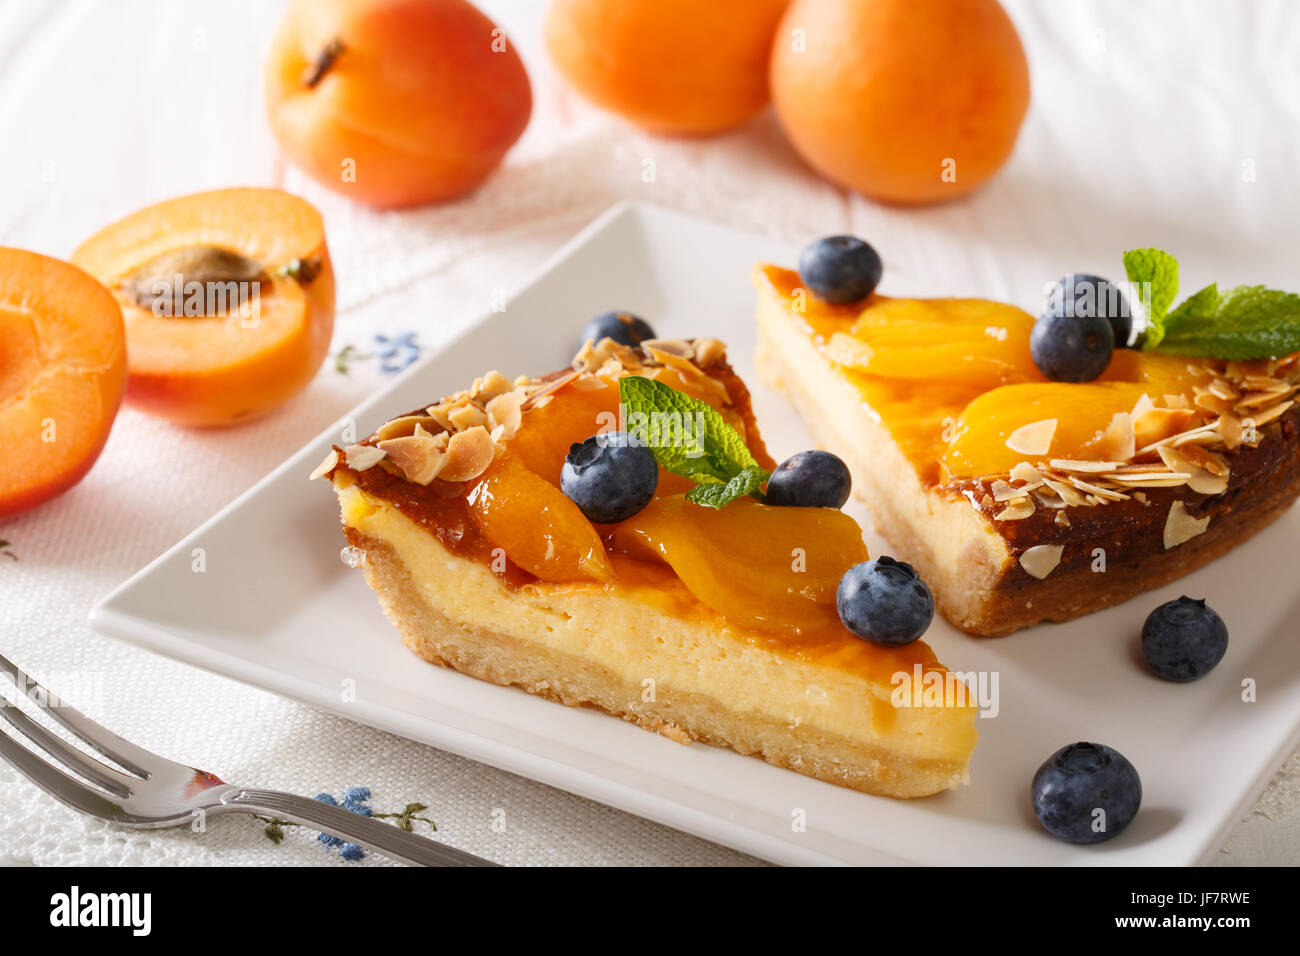 Beautiful apricot cheesecake with blueberries, mint and nuts close-up on a plate. horizontal - Stock Image